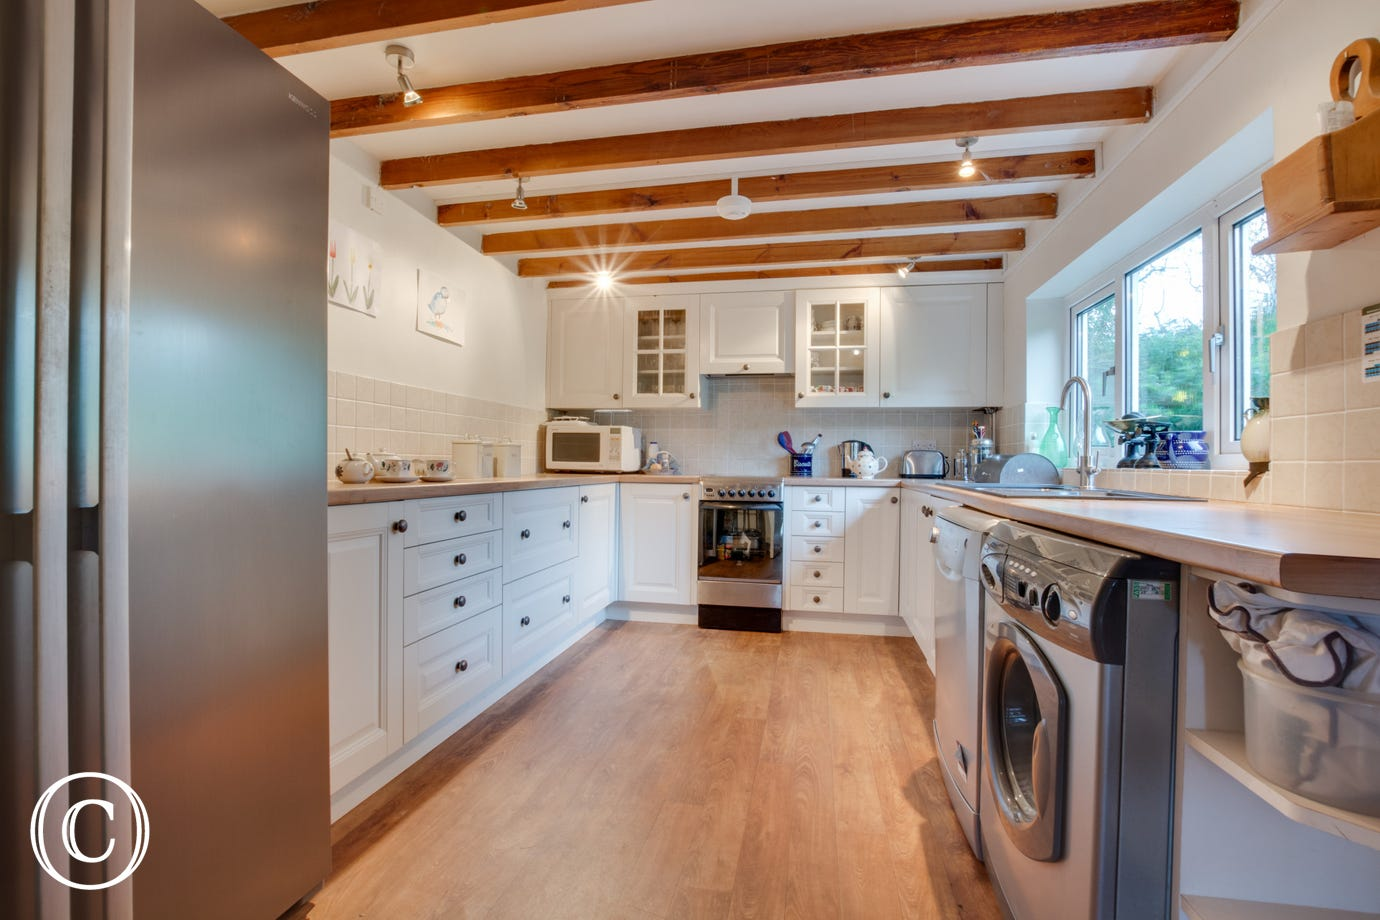 Newly fitted kitchen at this cottage full of character.